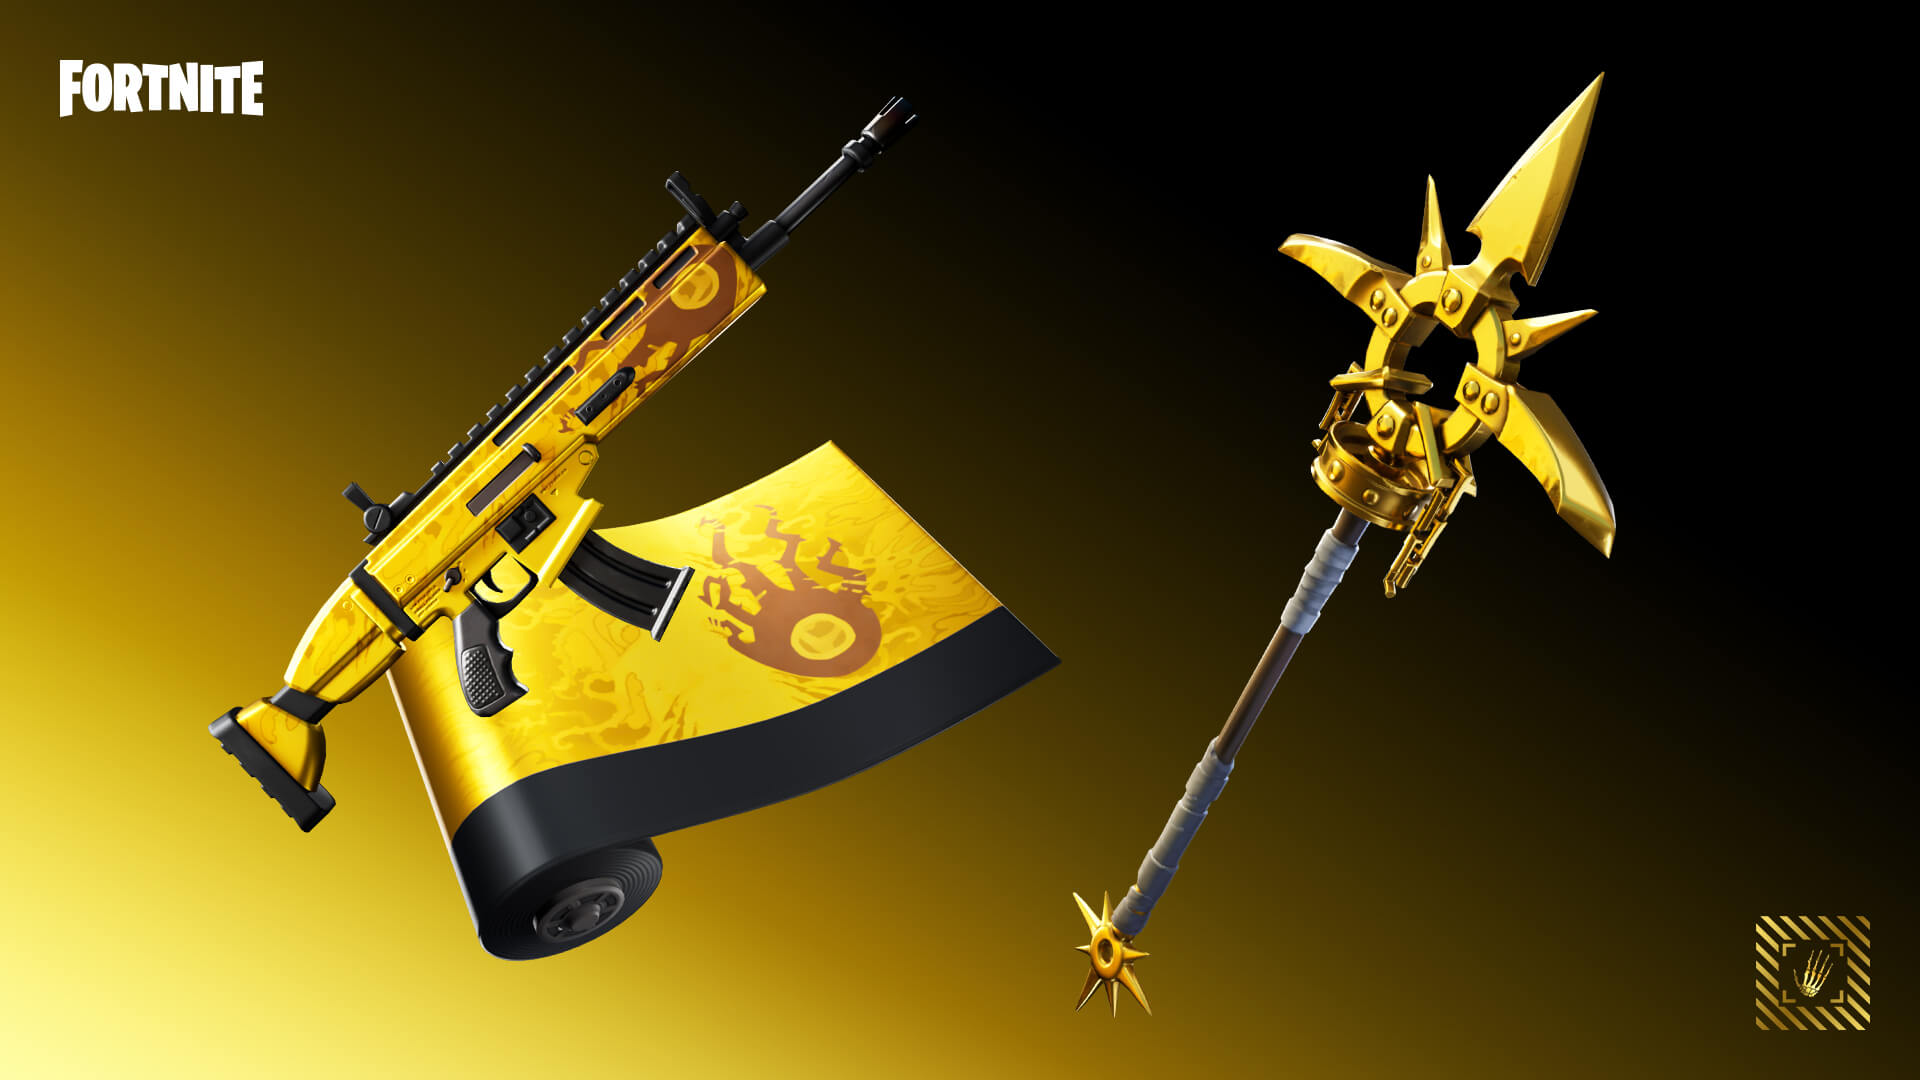 Fortnite Oro Pickaxe and Wrap Challenge